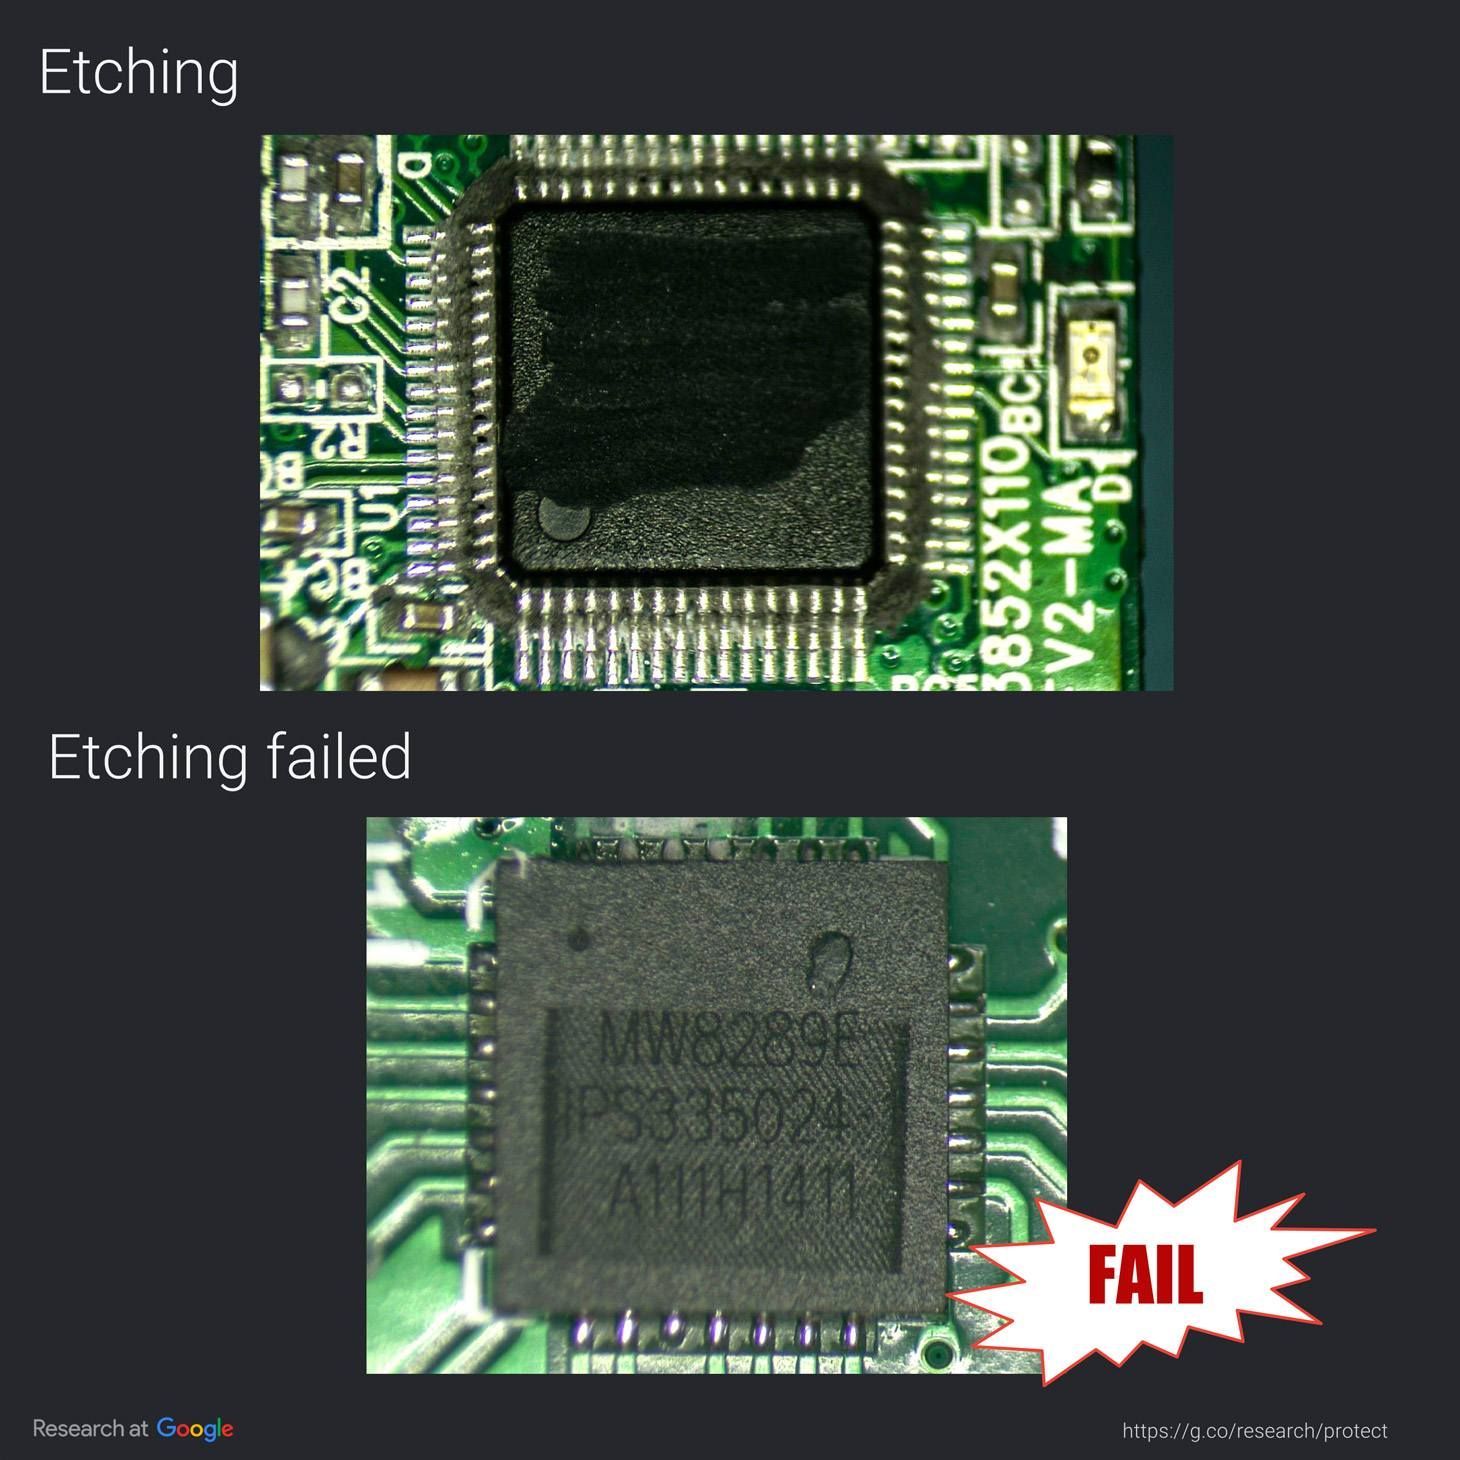 Is Your Encrypted Usb Drive Secure Kaspersky Lab Official Blog Photo Resist Method Of Etching A Printed Circuit Board Youtube Replacing Firmware With Tweaked Version That Allows An Attacker To Bypass Protection Hard Work However Skilled Attackers Significant Resources